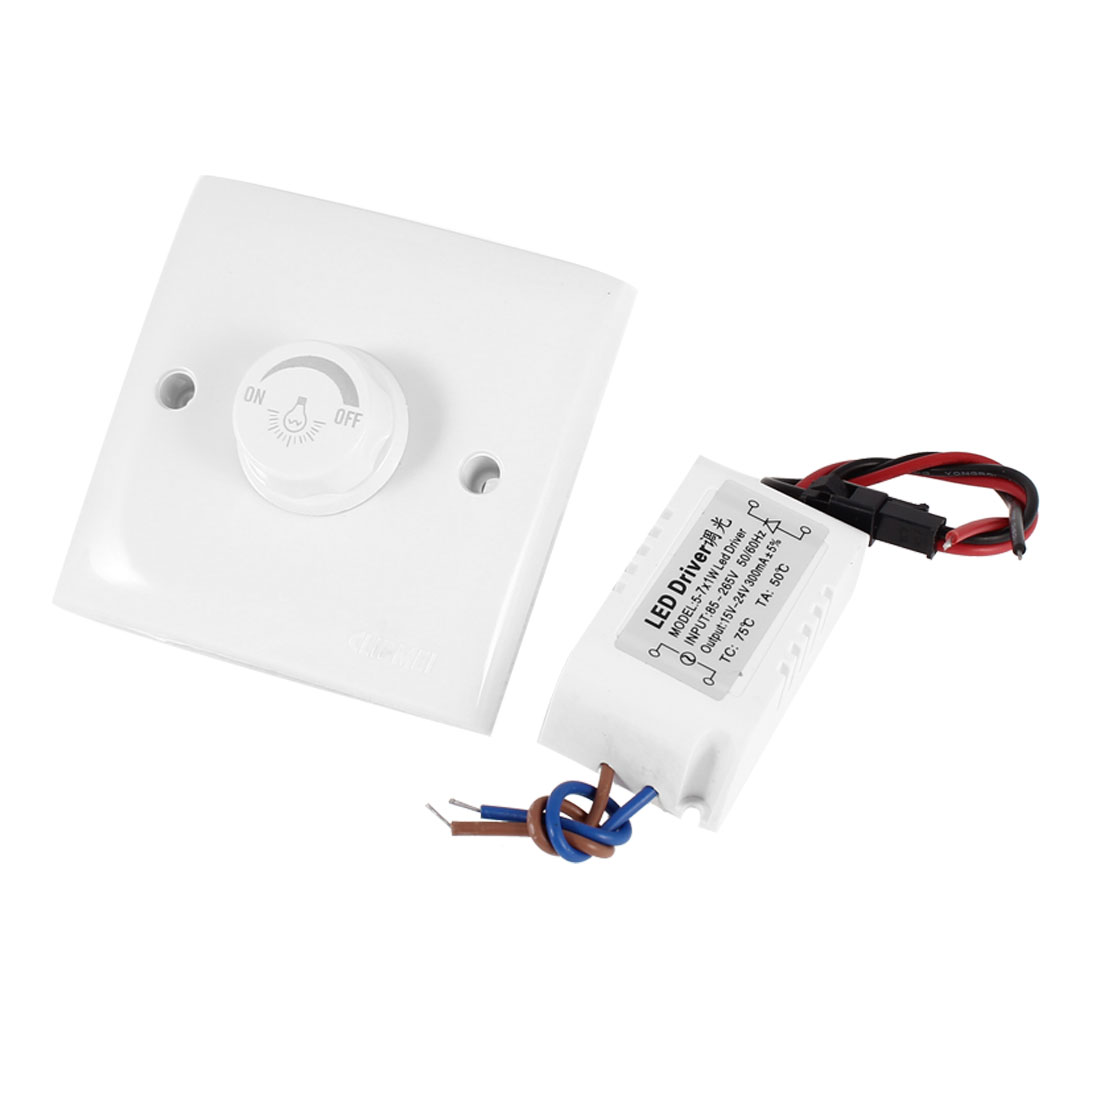 AC 200-250V White Wall Panle Plate LED Lamp Light Dimmer Control Switch w LED Driver